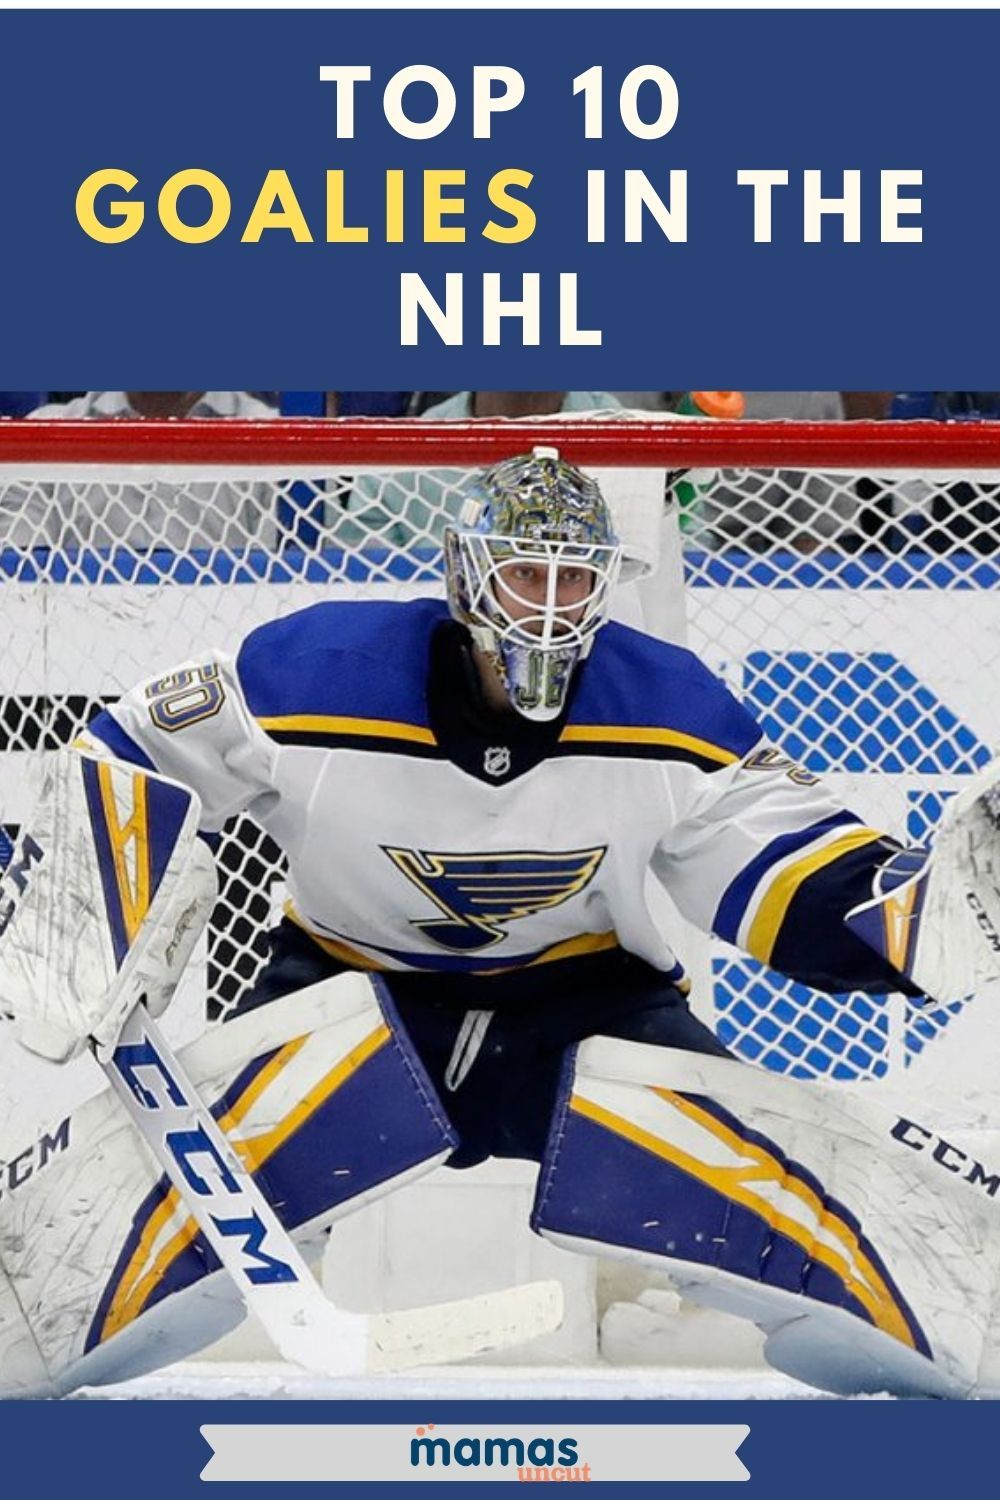 Top 10 Goalies In The Nhl With The Stanley Cup Playoffs Projected To Start In A Little Over A Month Let S Take A Lo